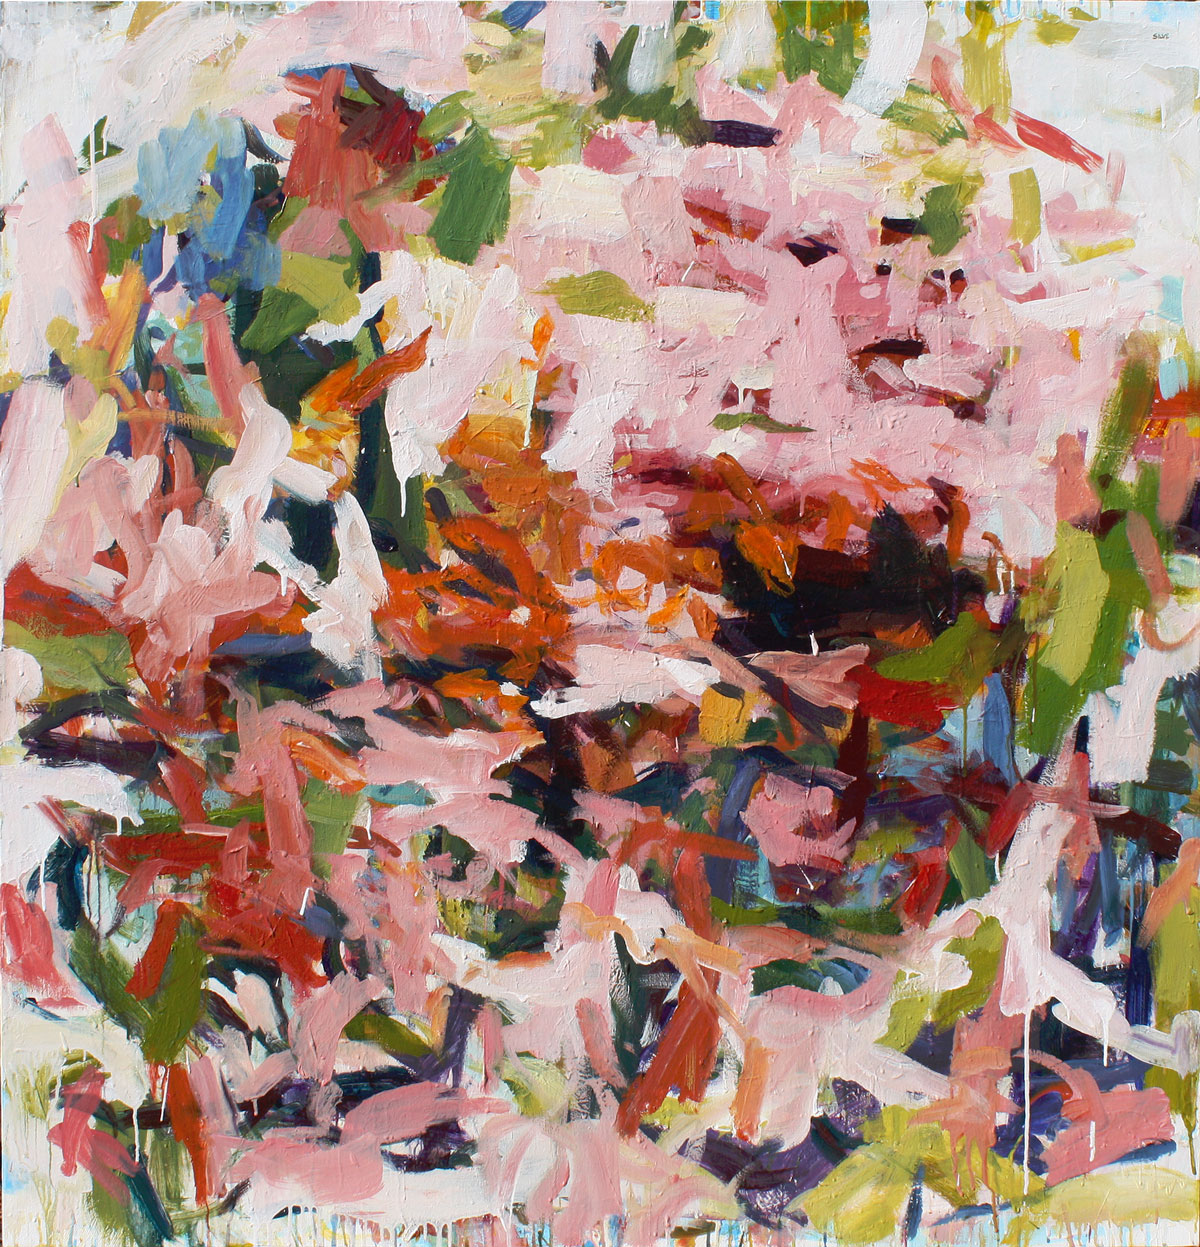 Lush Chaos II, 60 x 58 in. Available at  Susan Calloway Fine Arts .